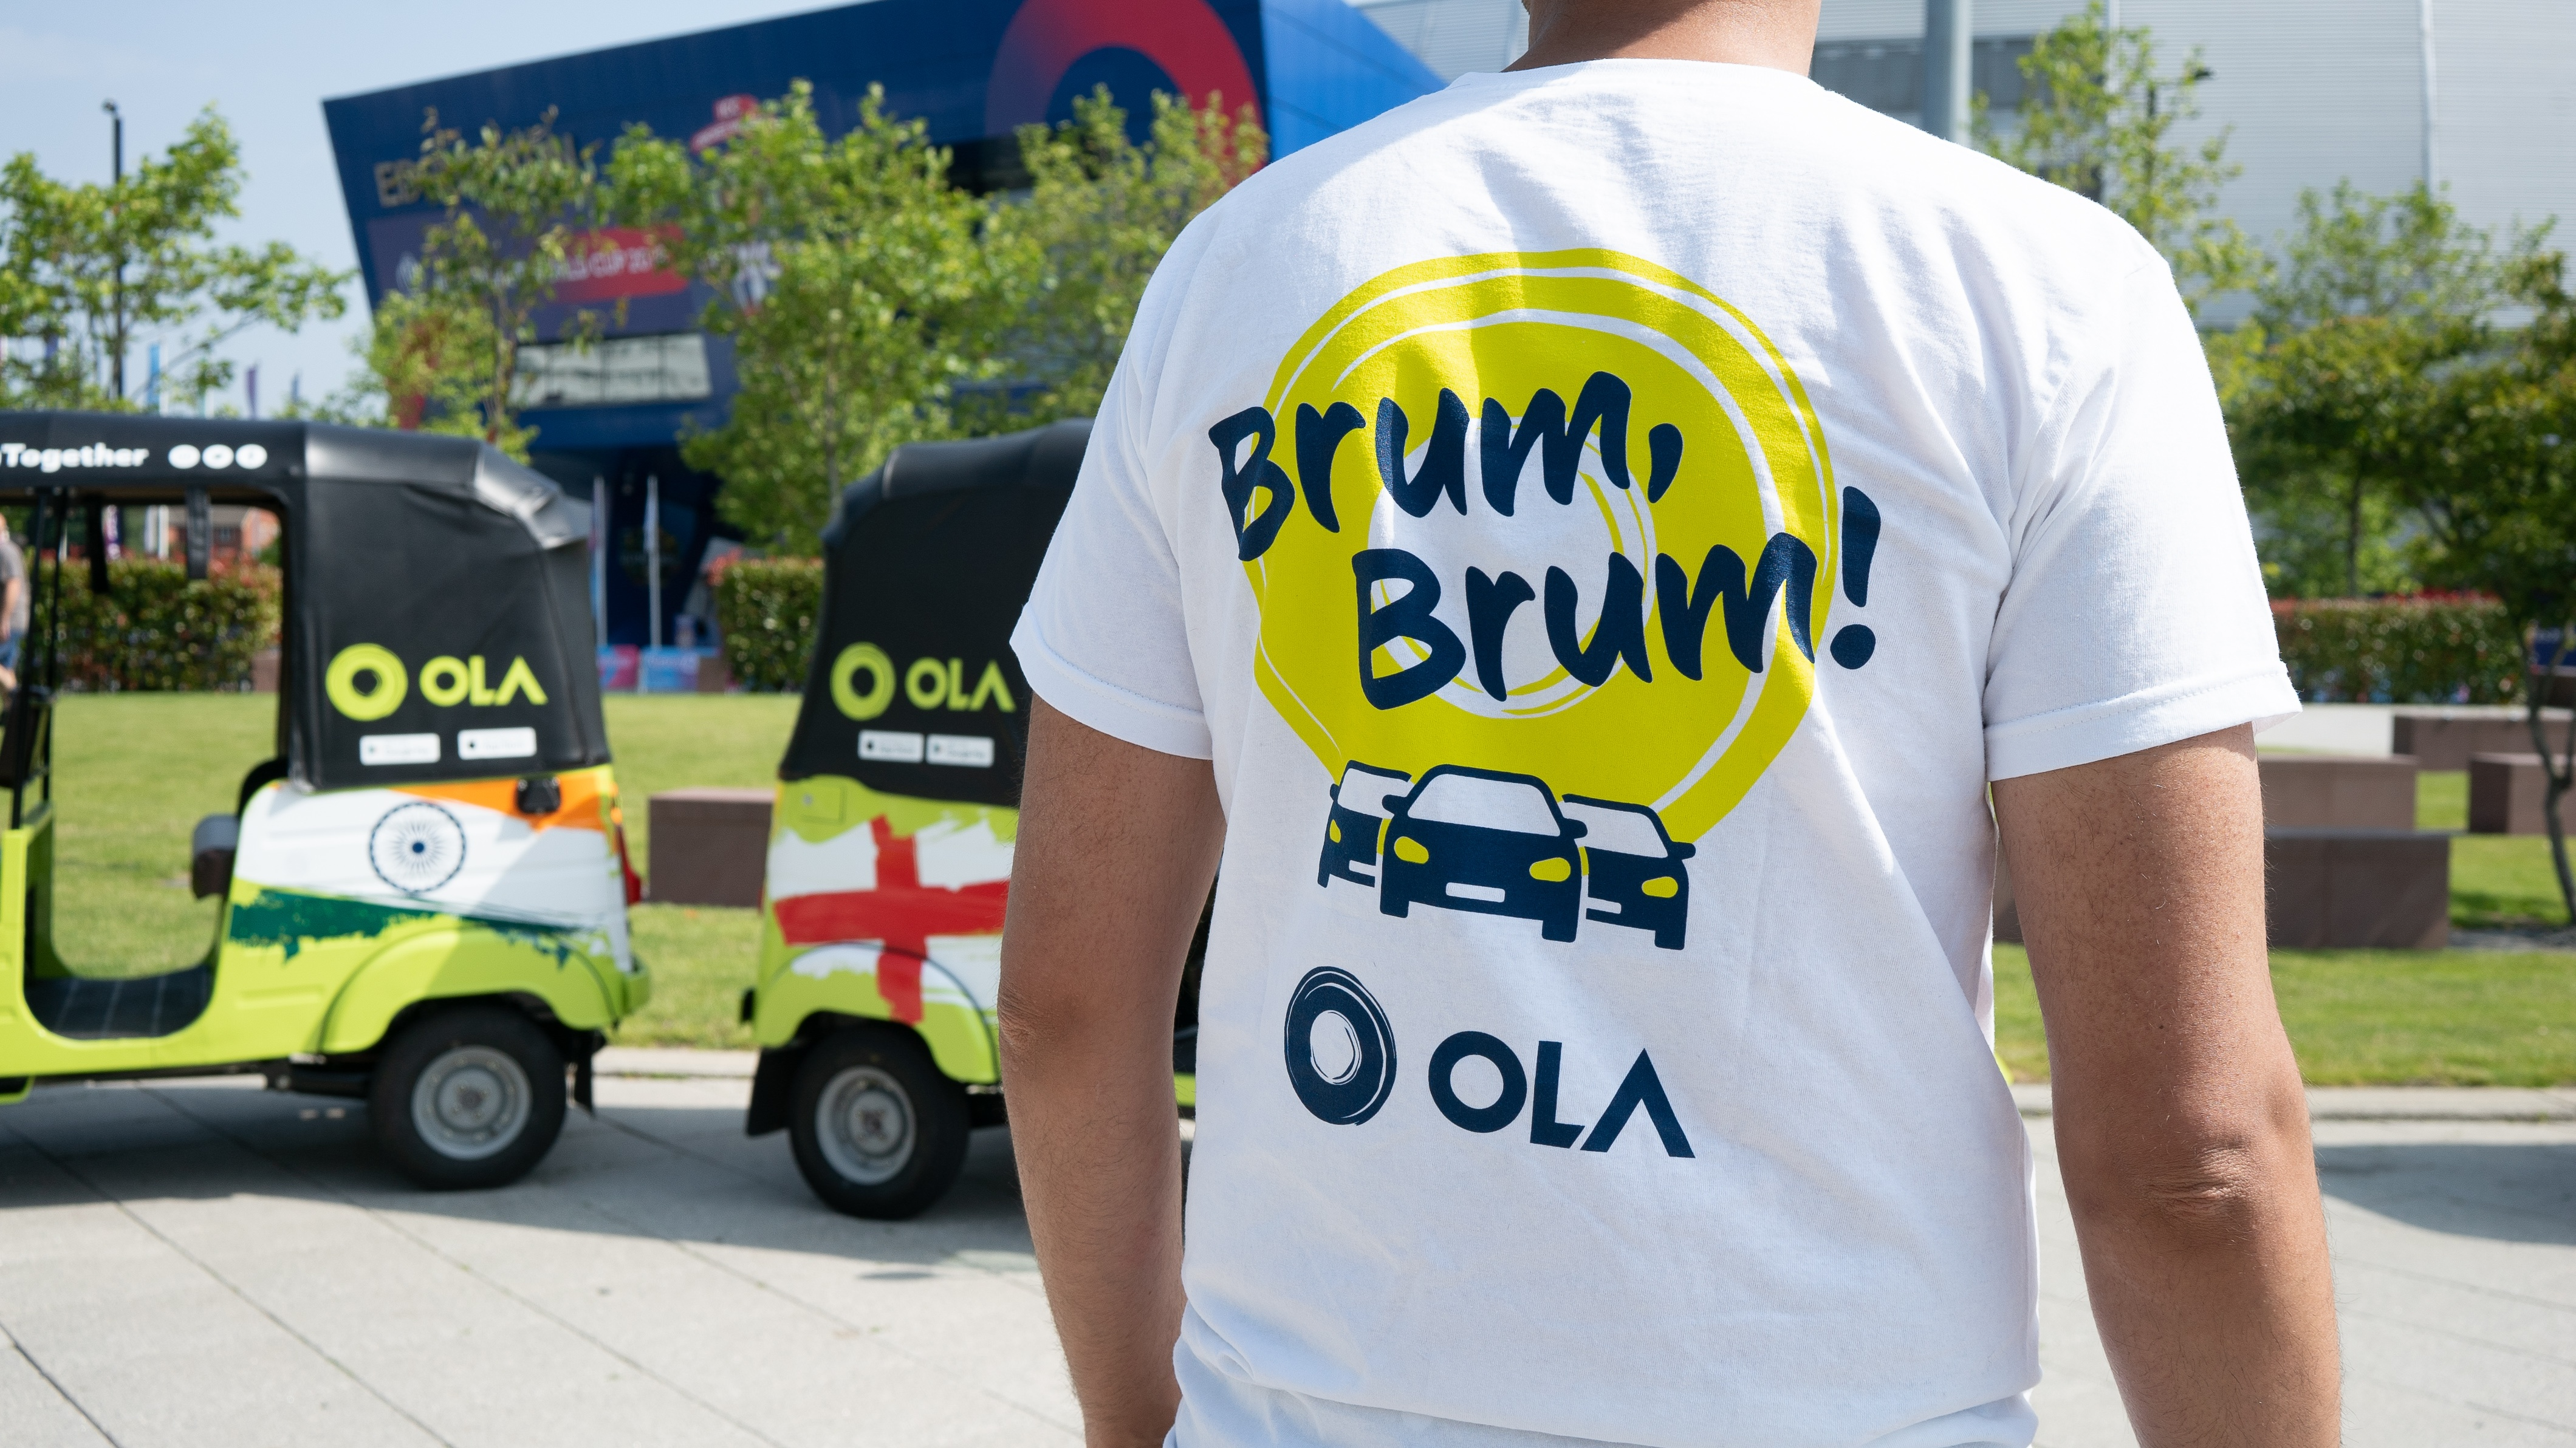 Ola has arrived in Birmingham with 50% off all rides for your first